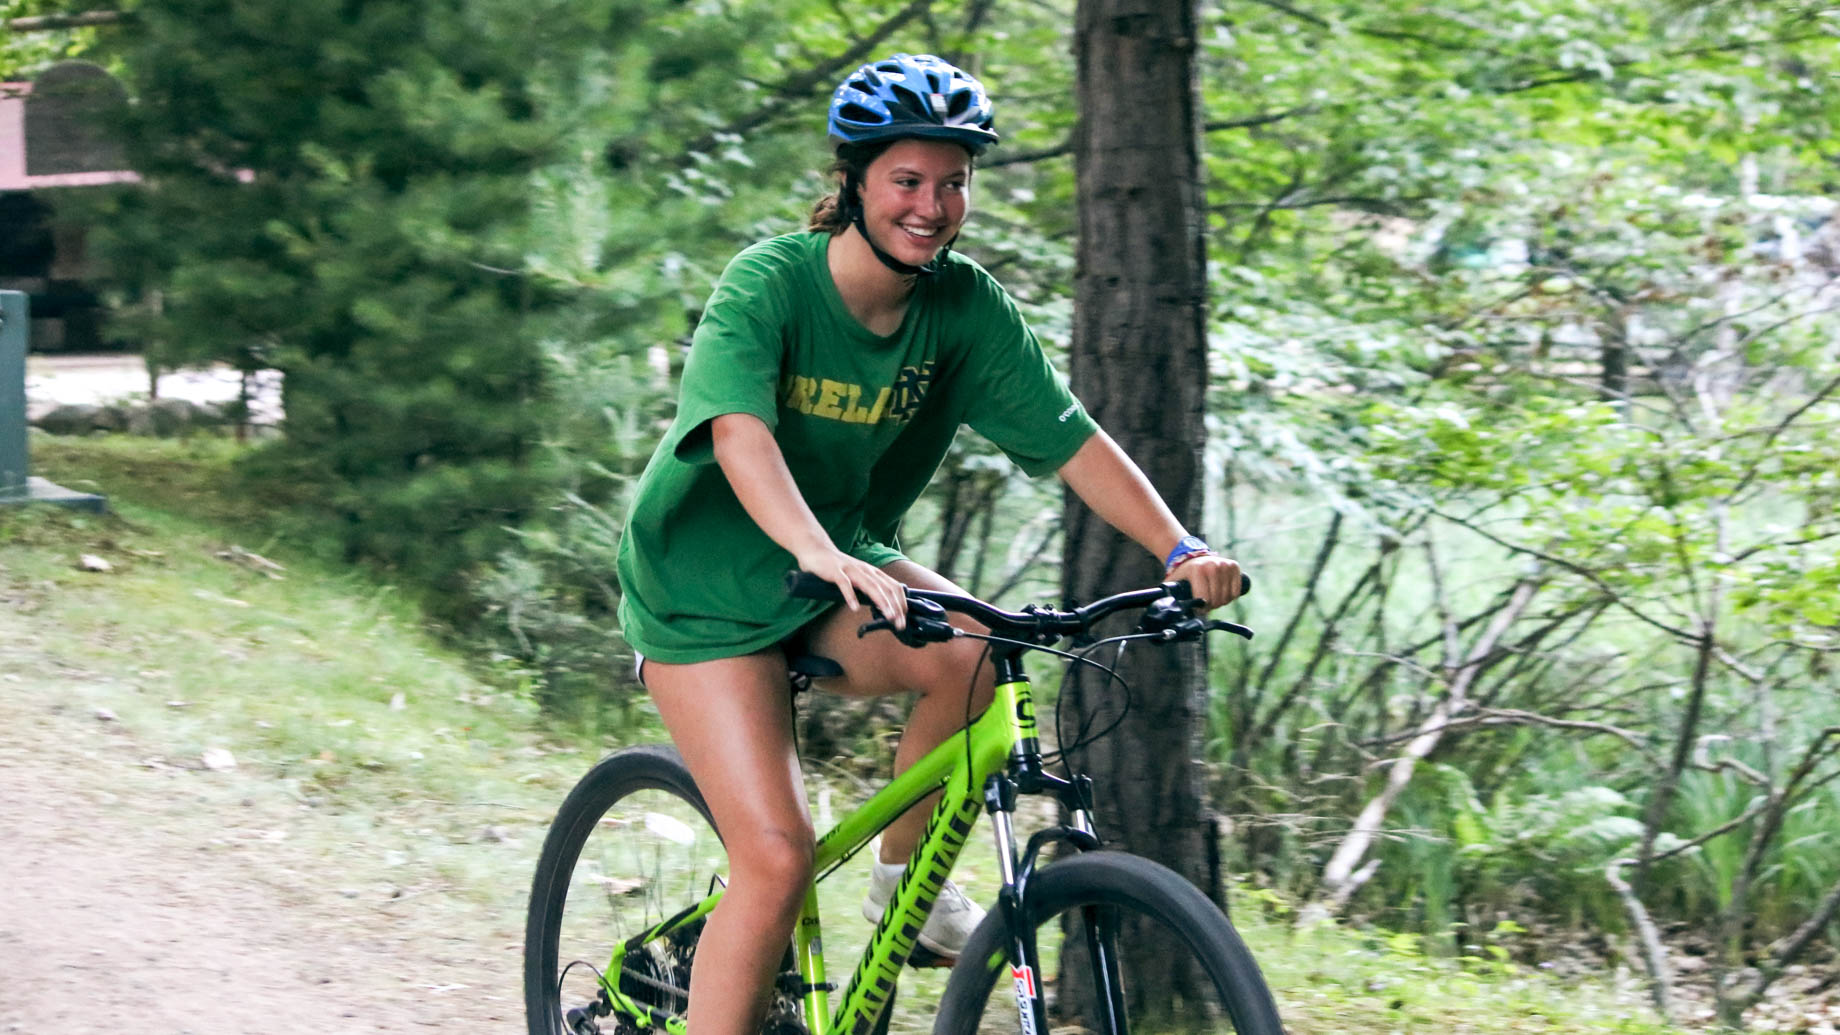 Girl rides mountain bike down summer camp path